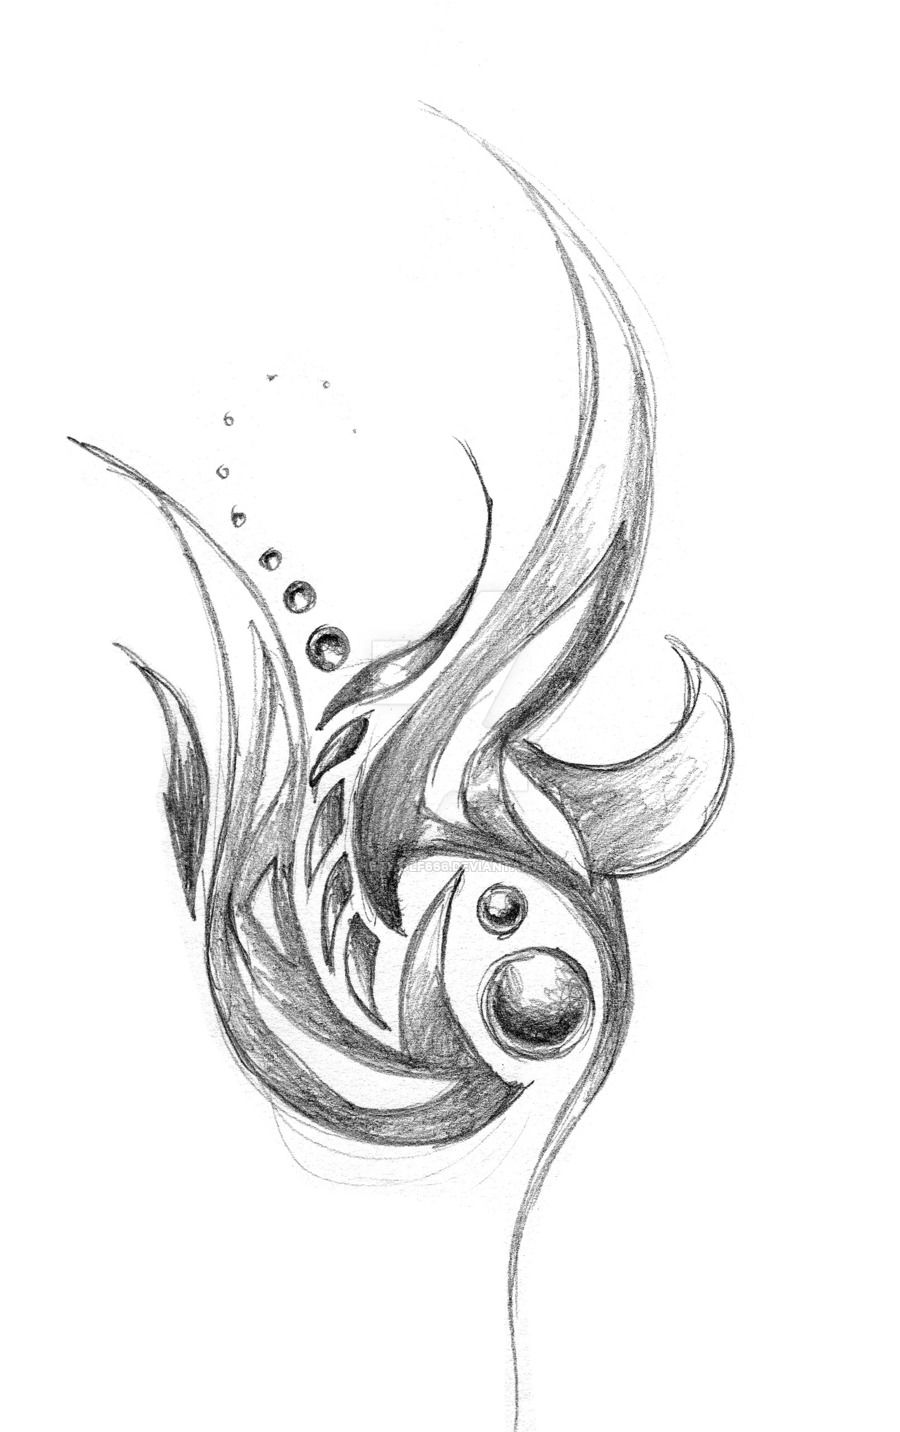 Abstract Tattoo Design 2 Abstract Tattoo Abstract Tattoo Designs Tattoo Designs